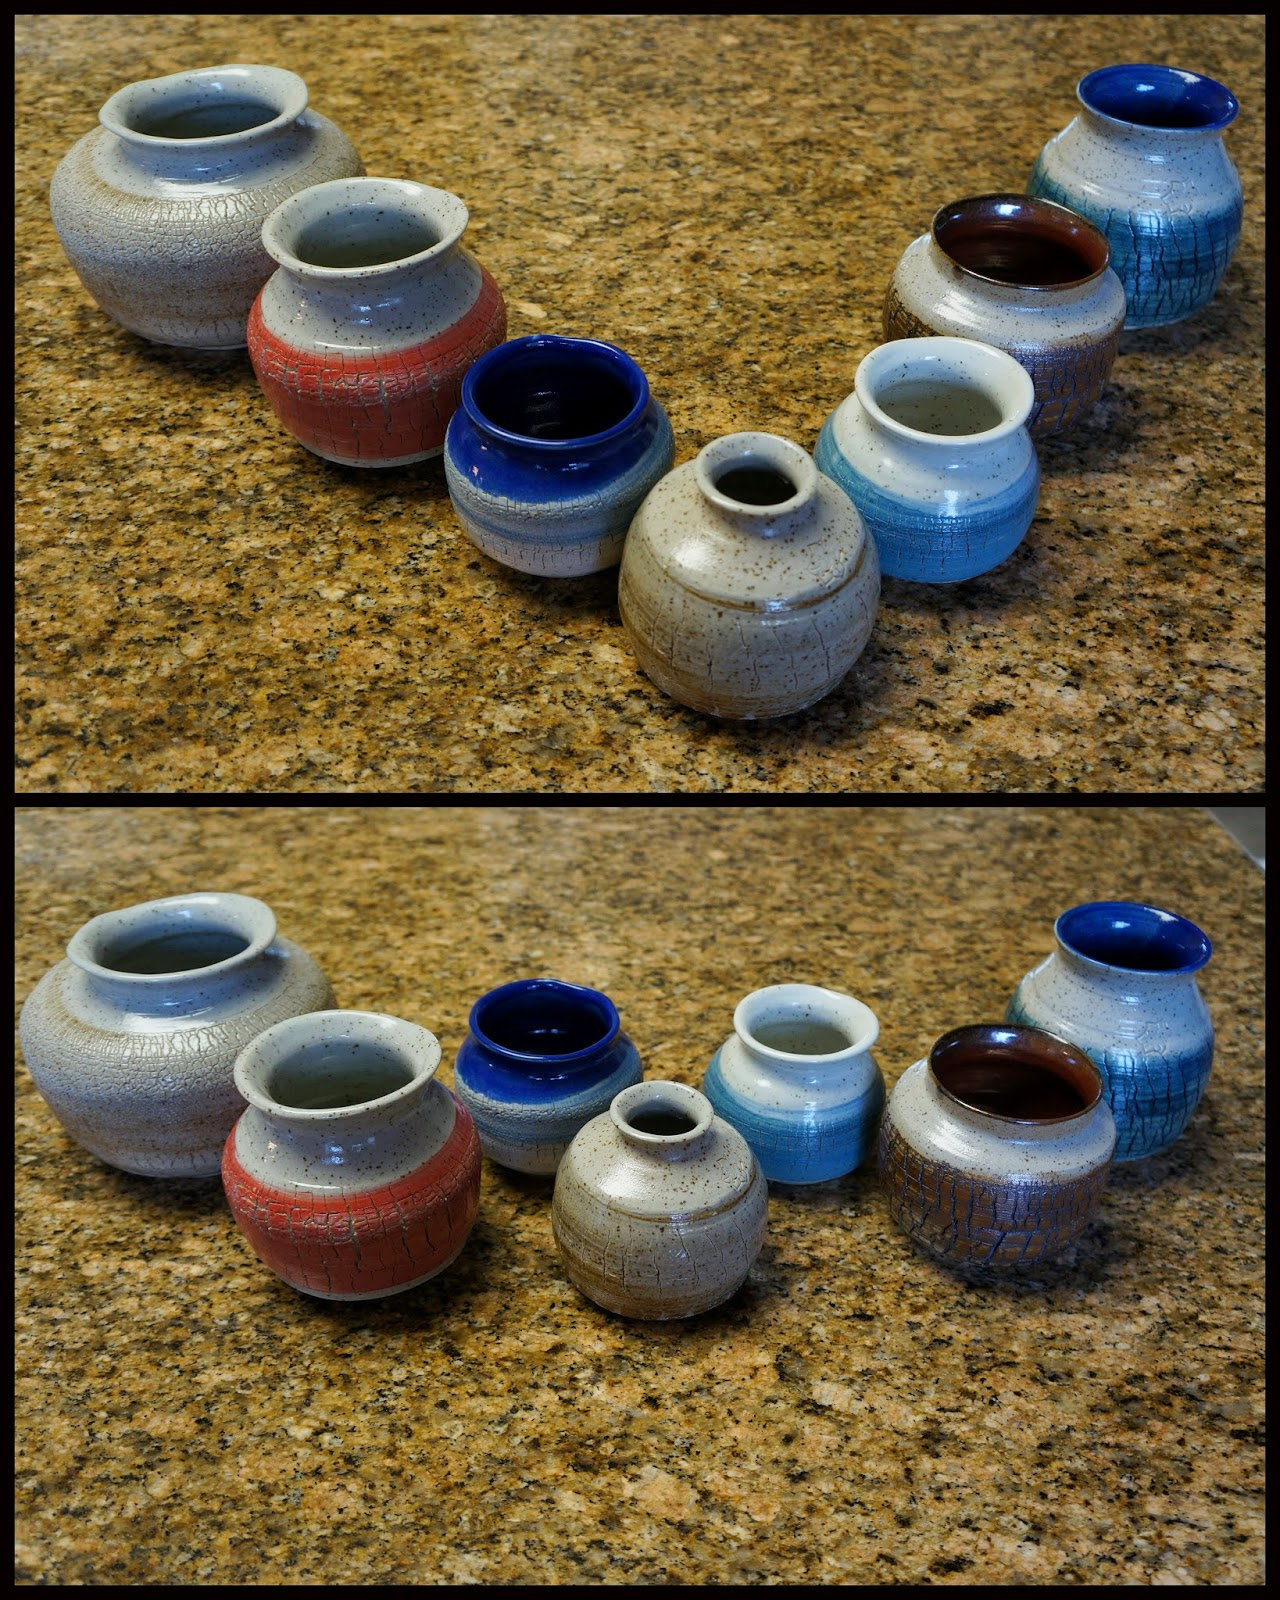 Sodium silicate crackle ceramic pottery wheelthrown vases.